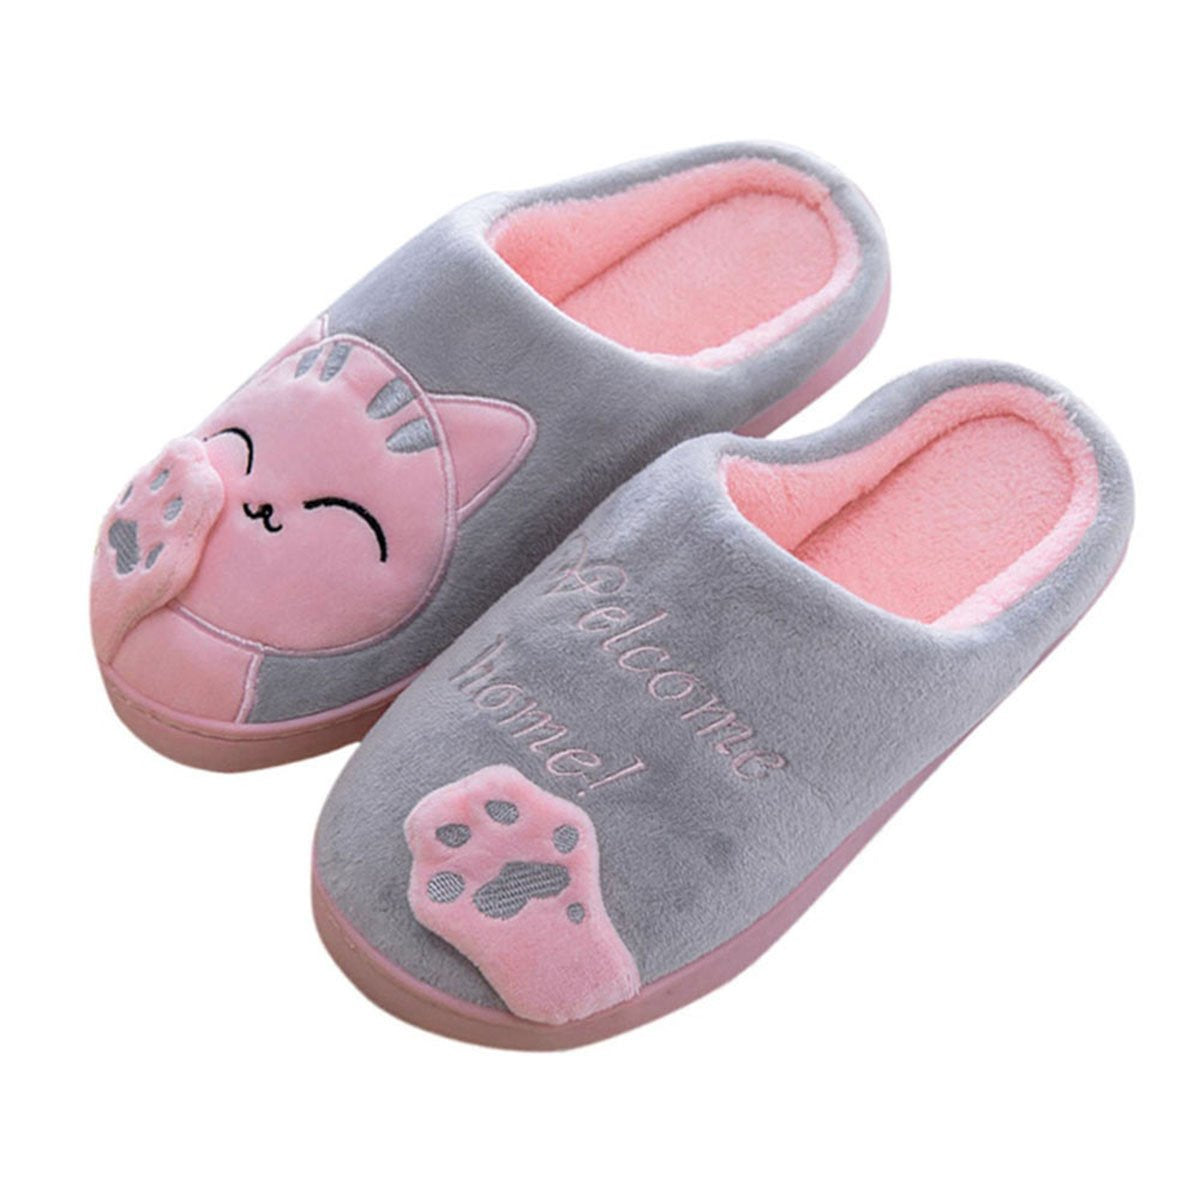 Winter Indoor Slippers for Women